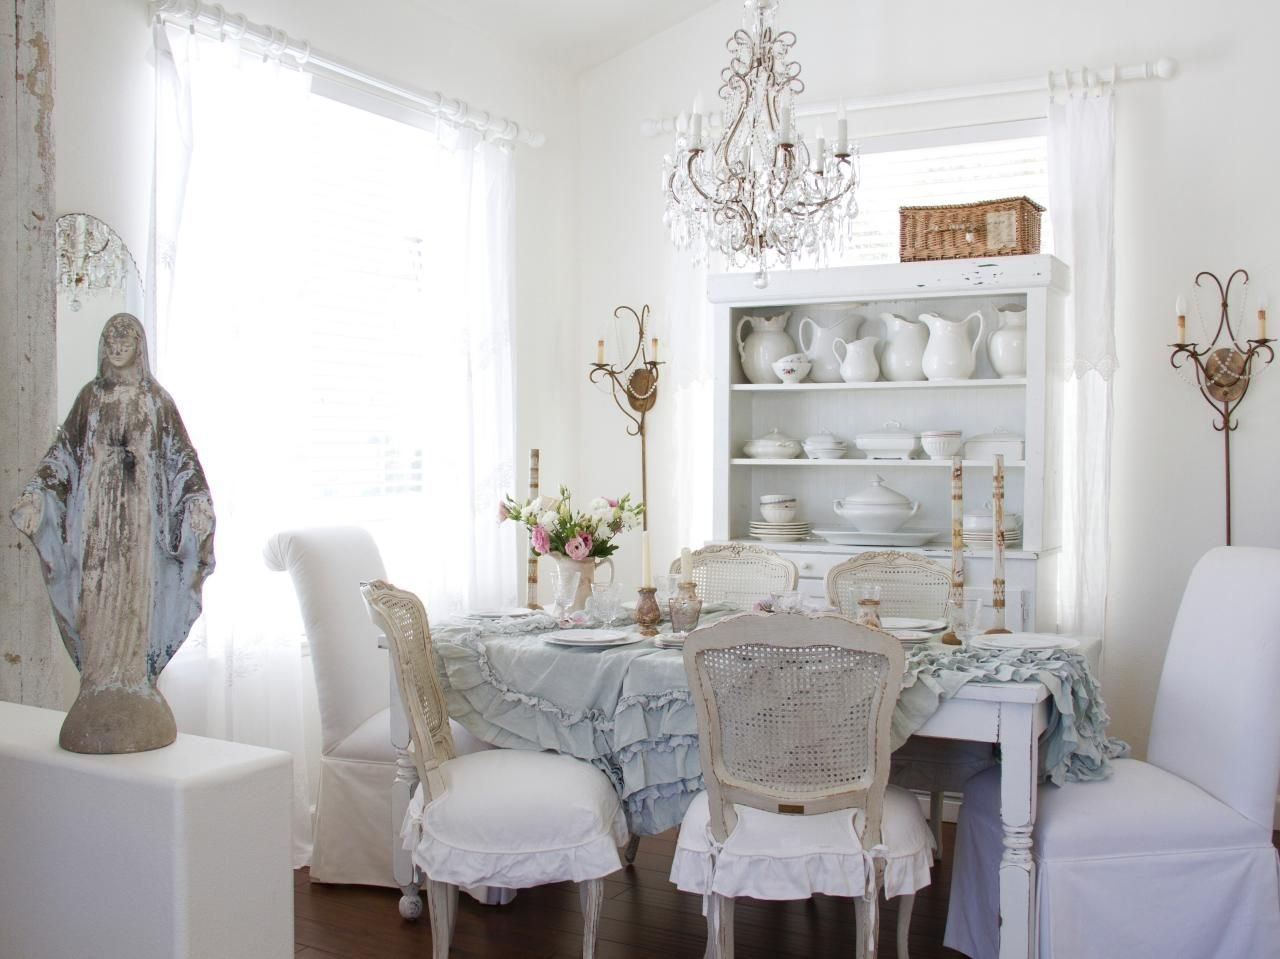 Welcoming Shab Chic Dining Room With Floor Mirror And White Inside Shabby Chic Floor Mirror (Image 15 of 15)